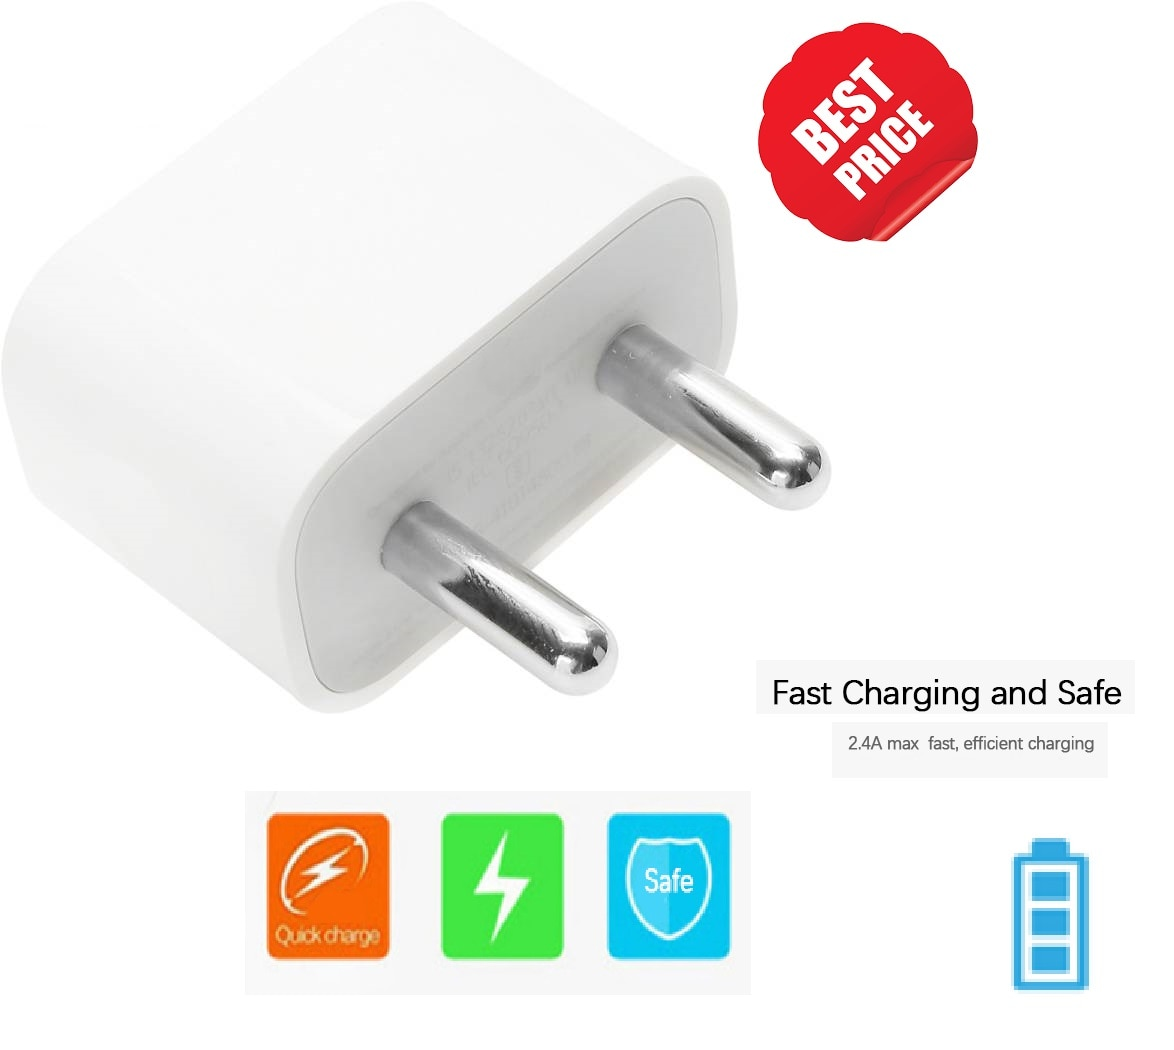 Mobile Phone Wall Chargers Couponsdad Sony Fast Charging Adaptor Charger Cp Ad2a 40 Ikart White